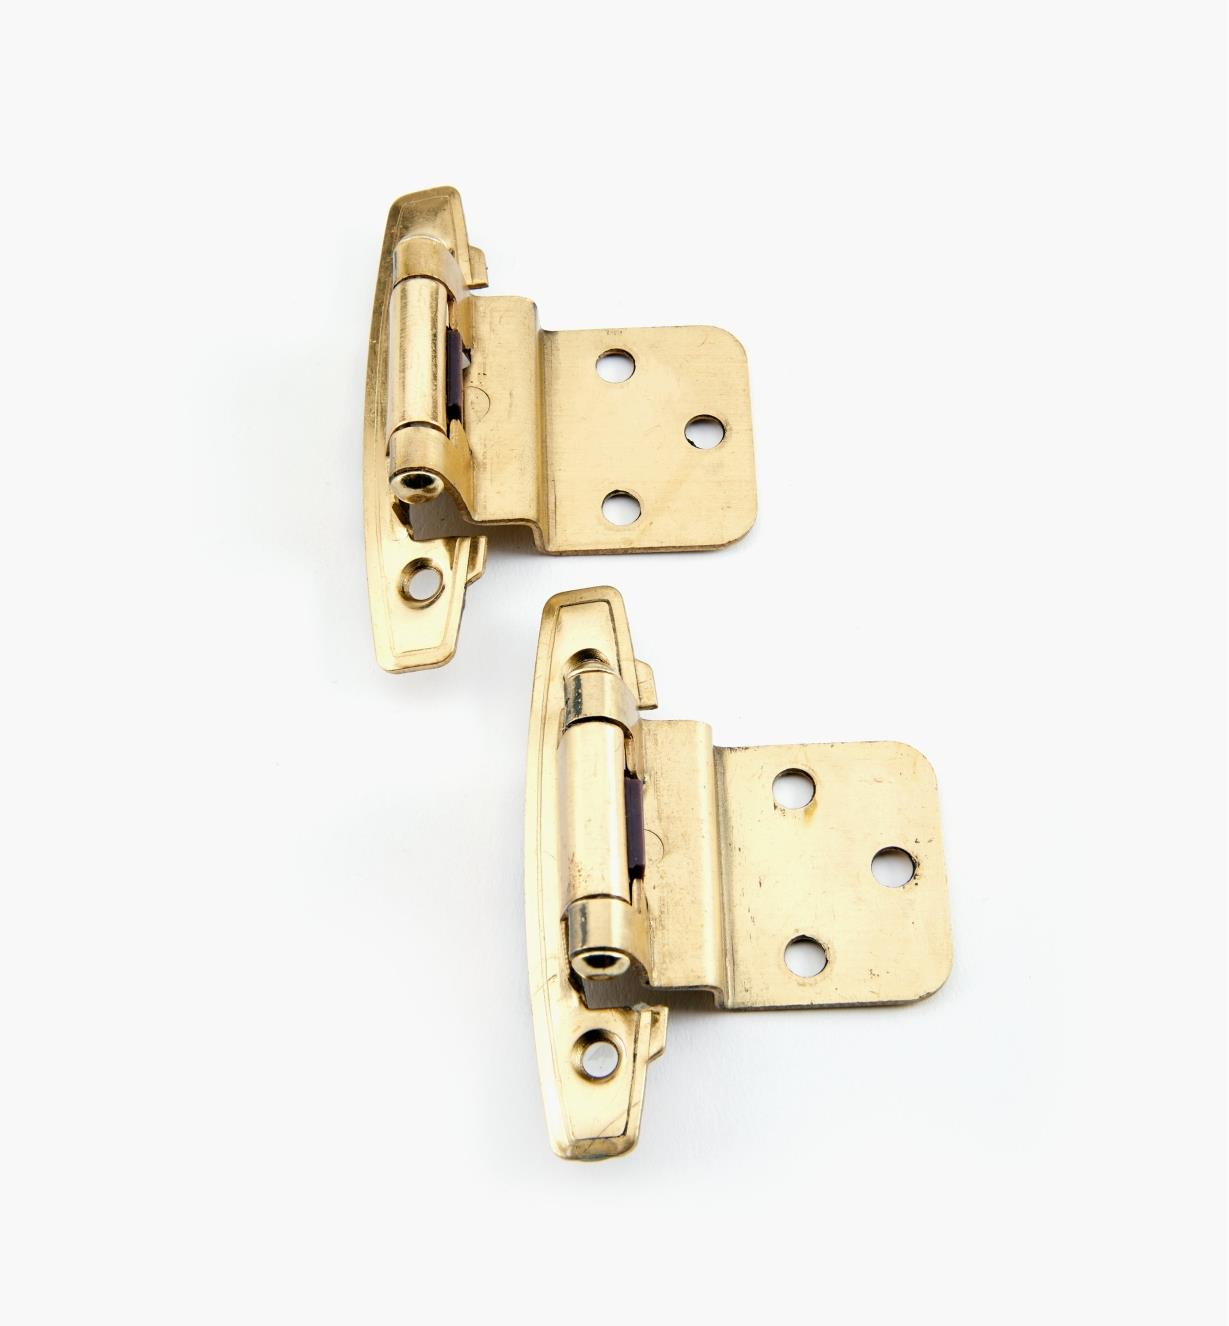 03W3021 - Belwith Brass Offset Hinges, pr.